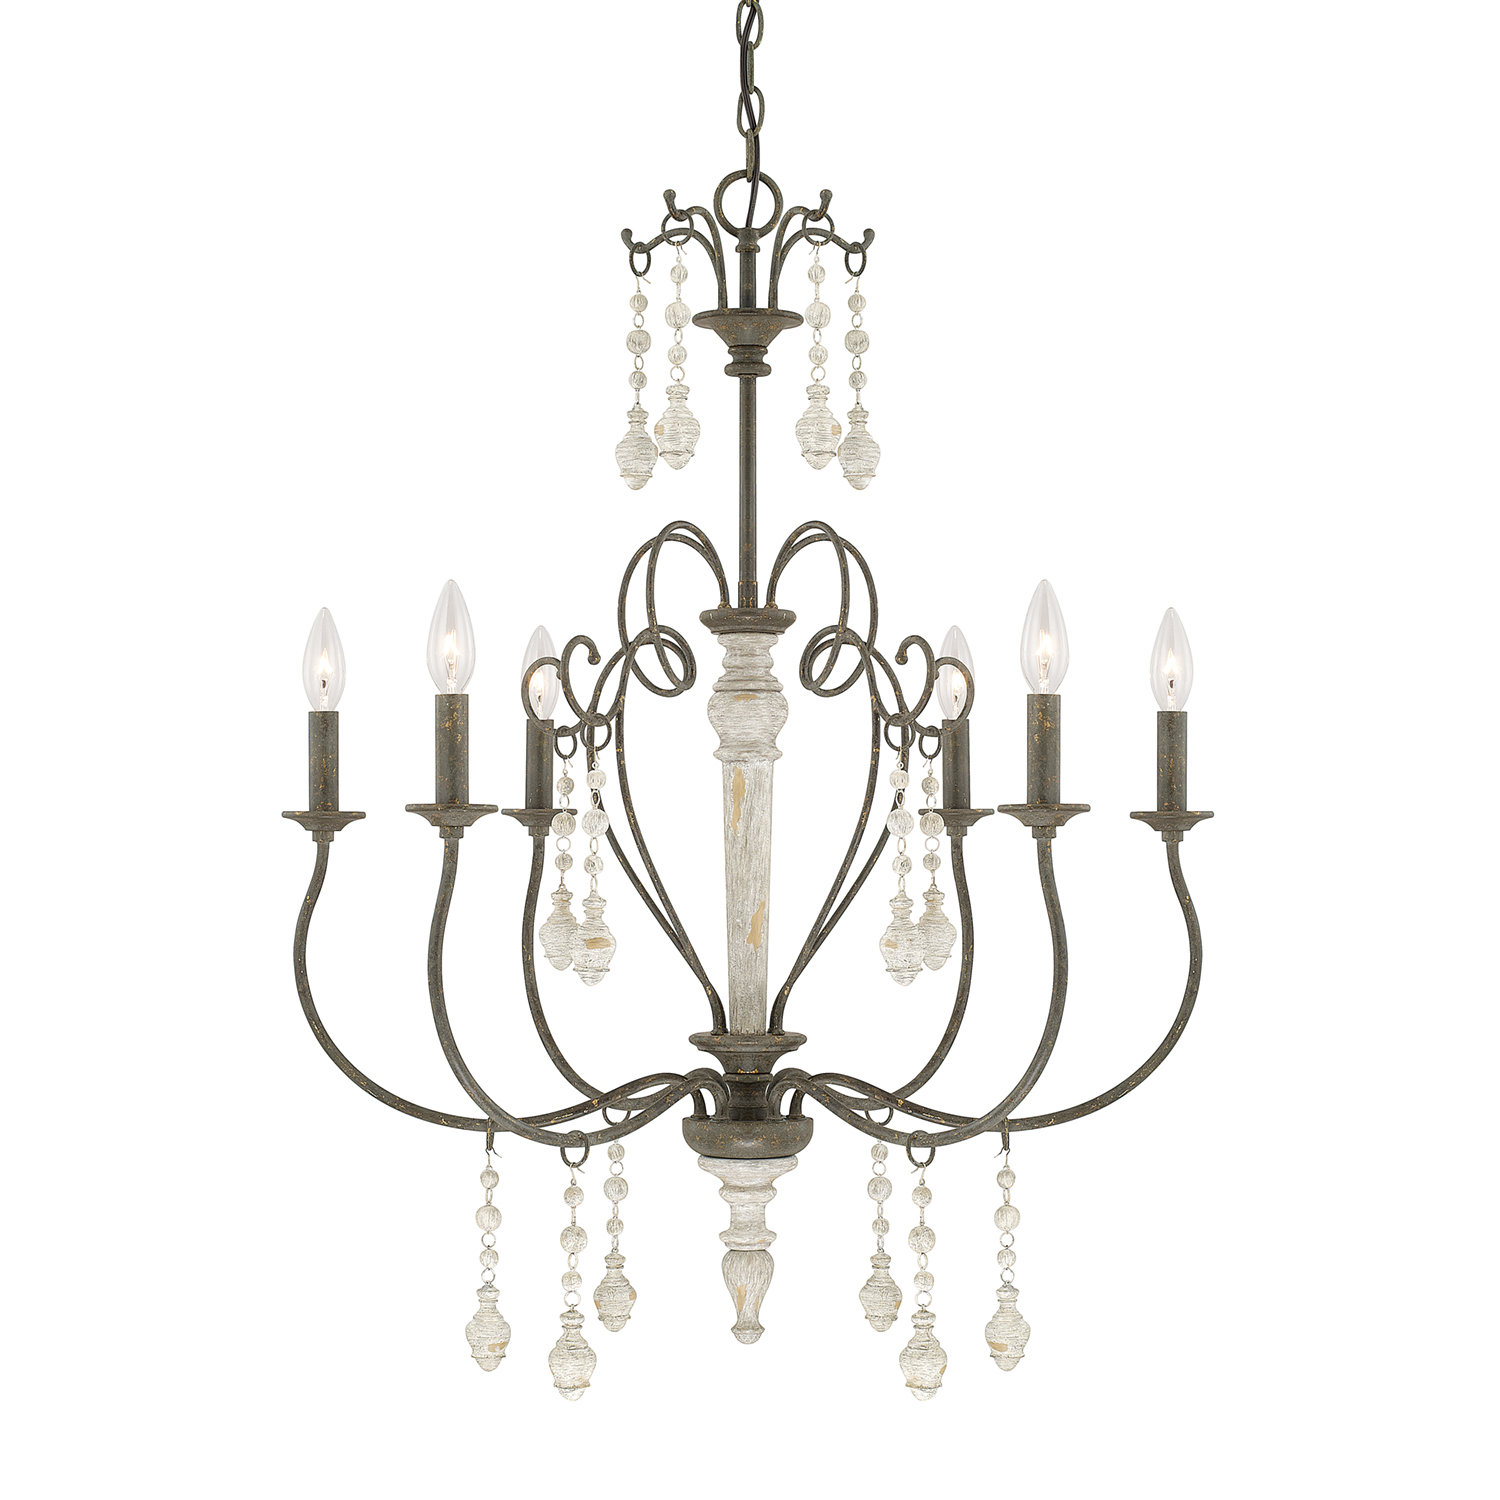 Bouchette Traditional 6 Light Candle Style Chandelier Within Armande Candle Style Chandeliers (Image 11 of 30)